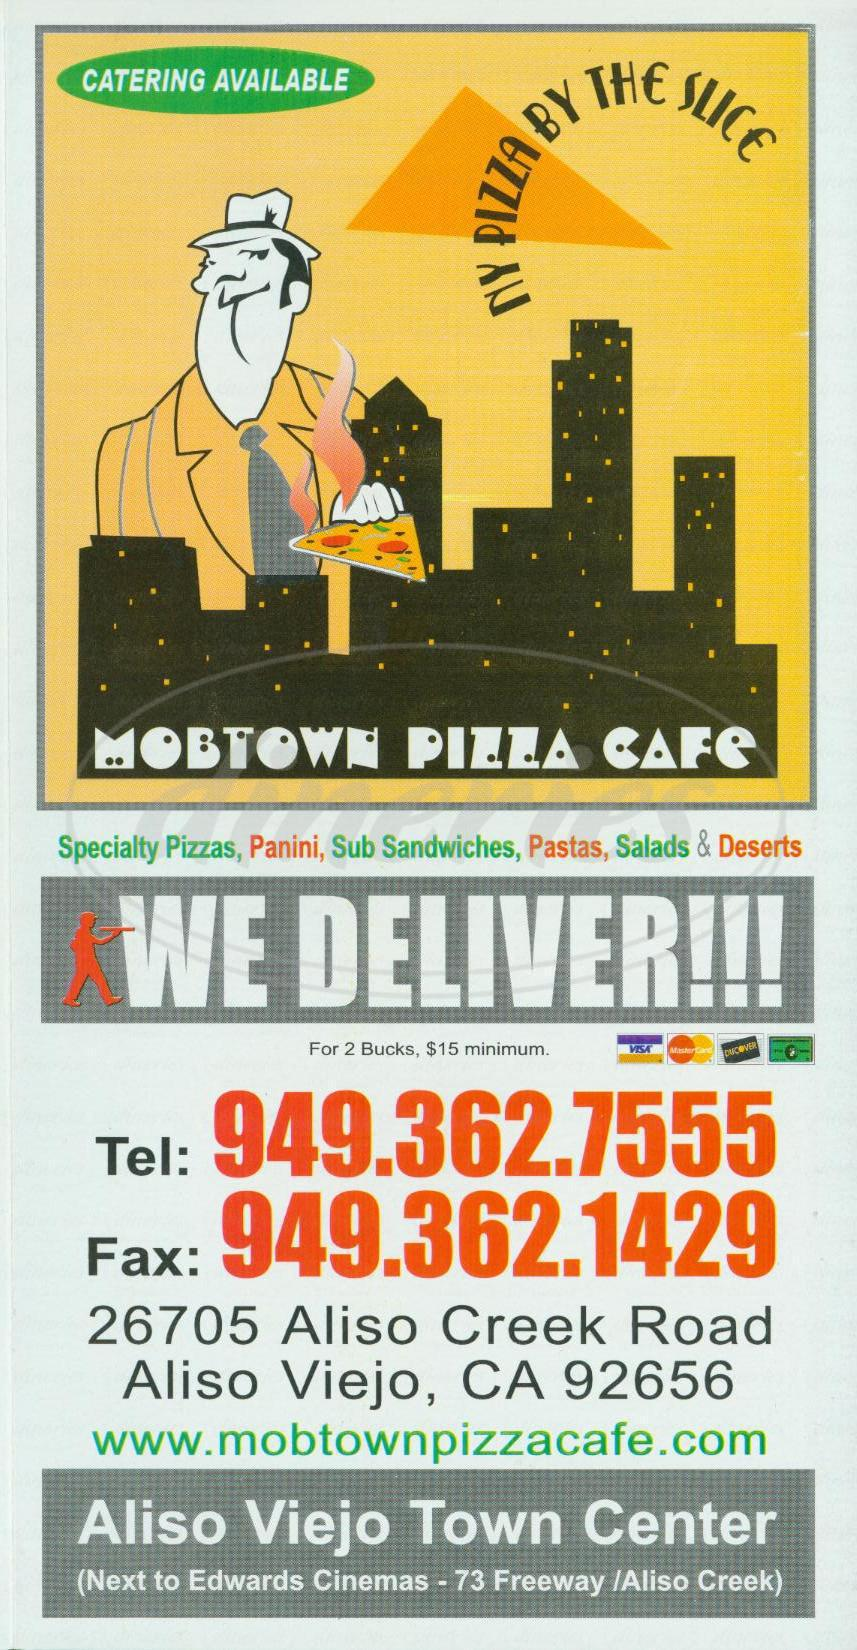 menu for Mobtown Pizza Café